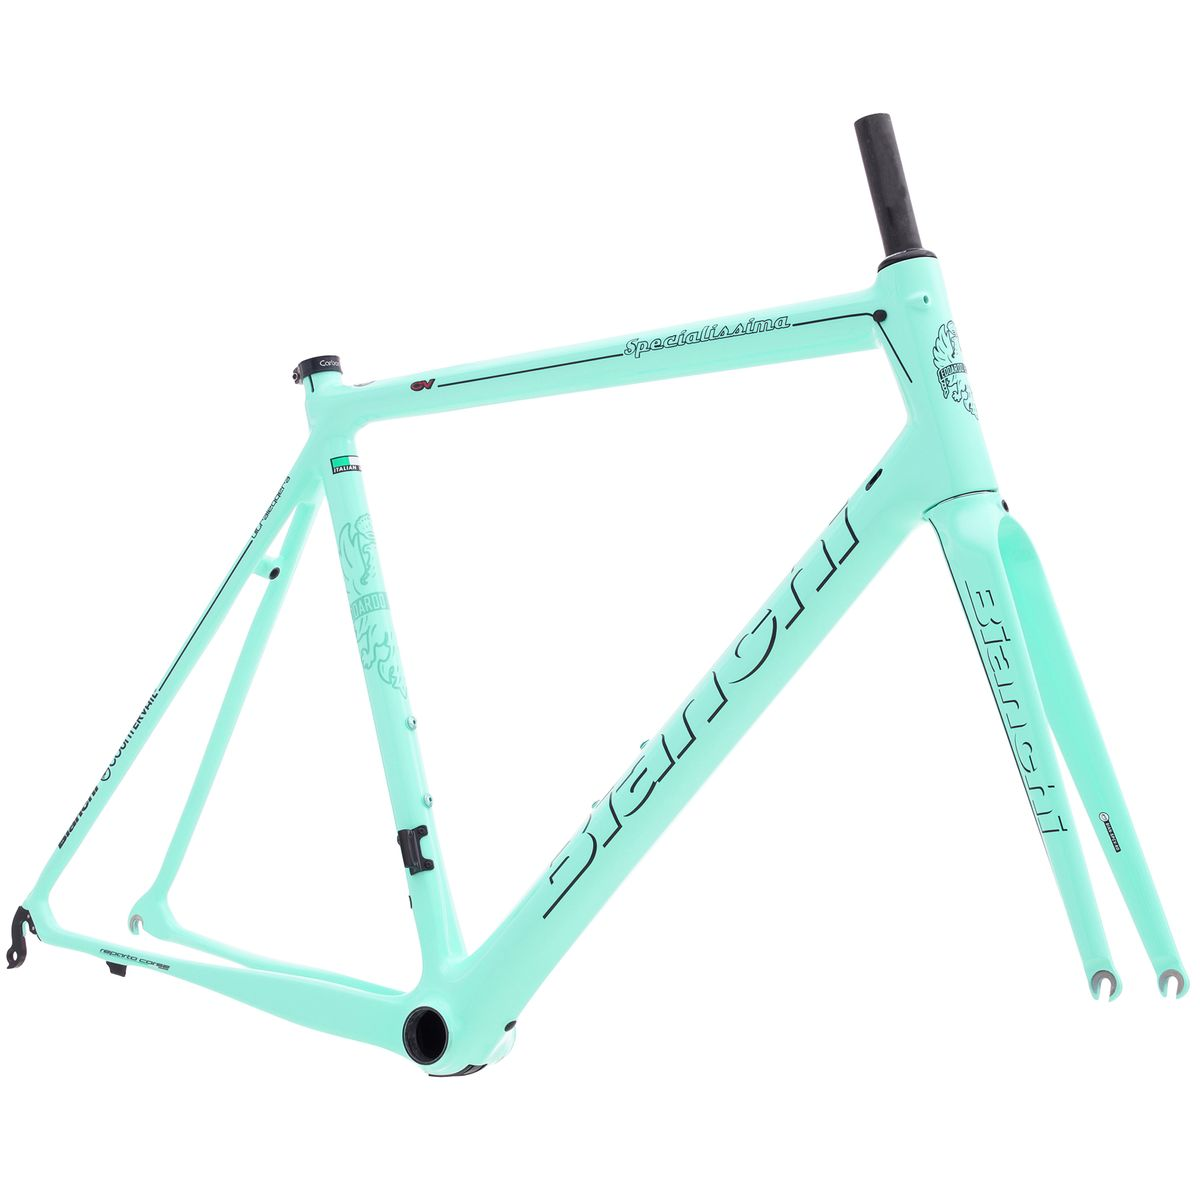 Bianchi Bikes & Frames for Sale - Carbon Road Bikes | Competitive ...